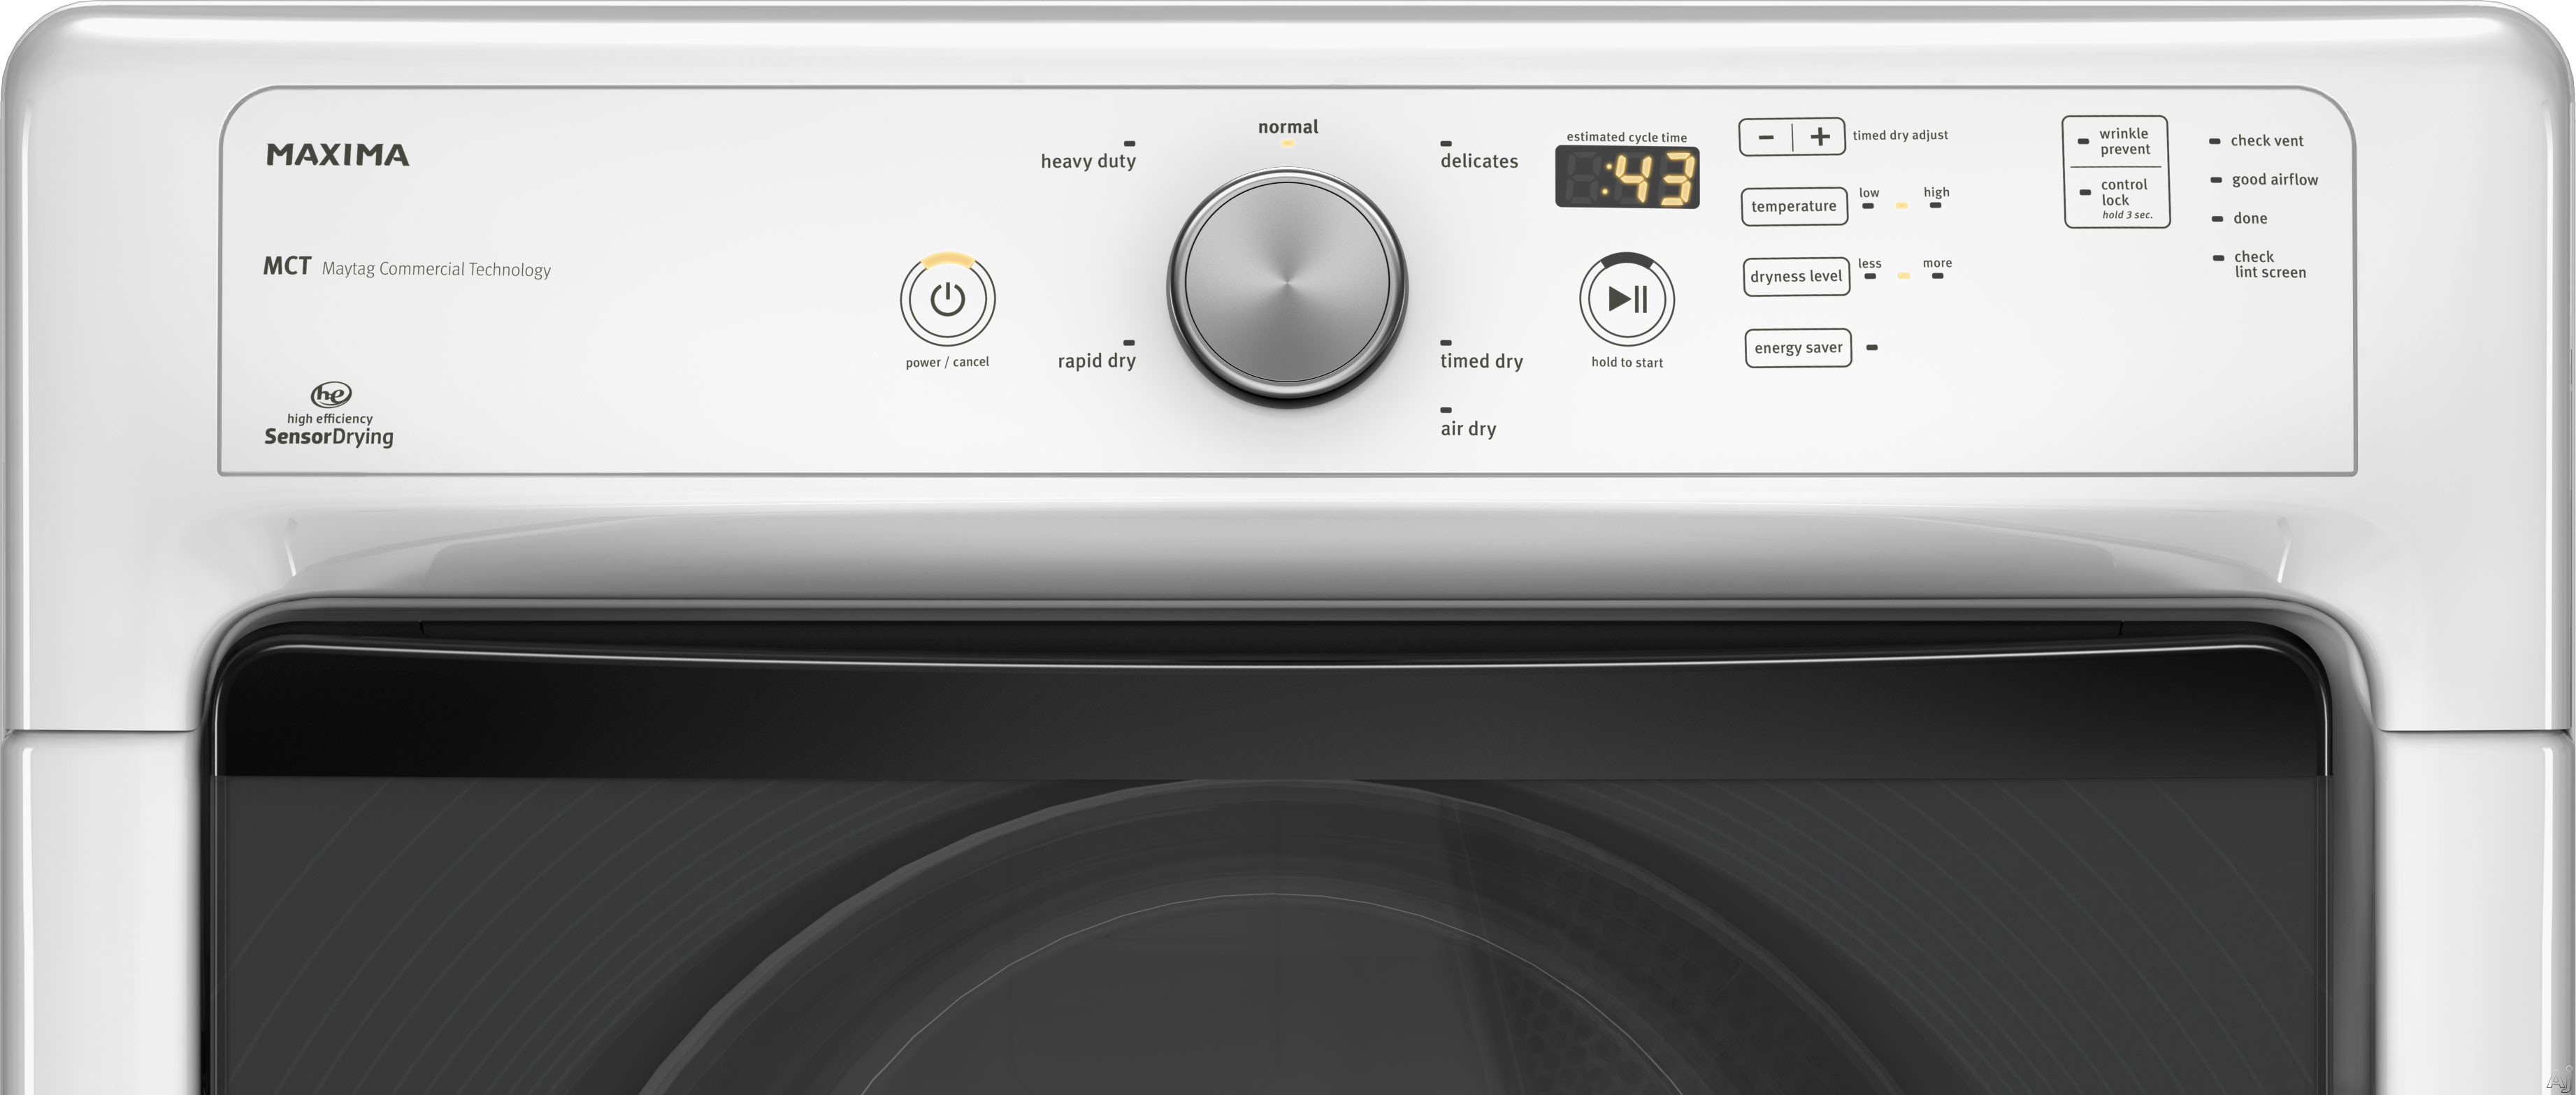 Maytag Mhw3100dw 27 Inch 4 2 Cu Ft Front Load Washer